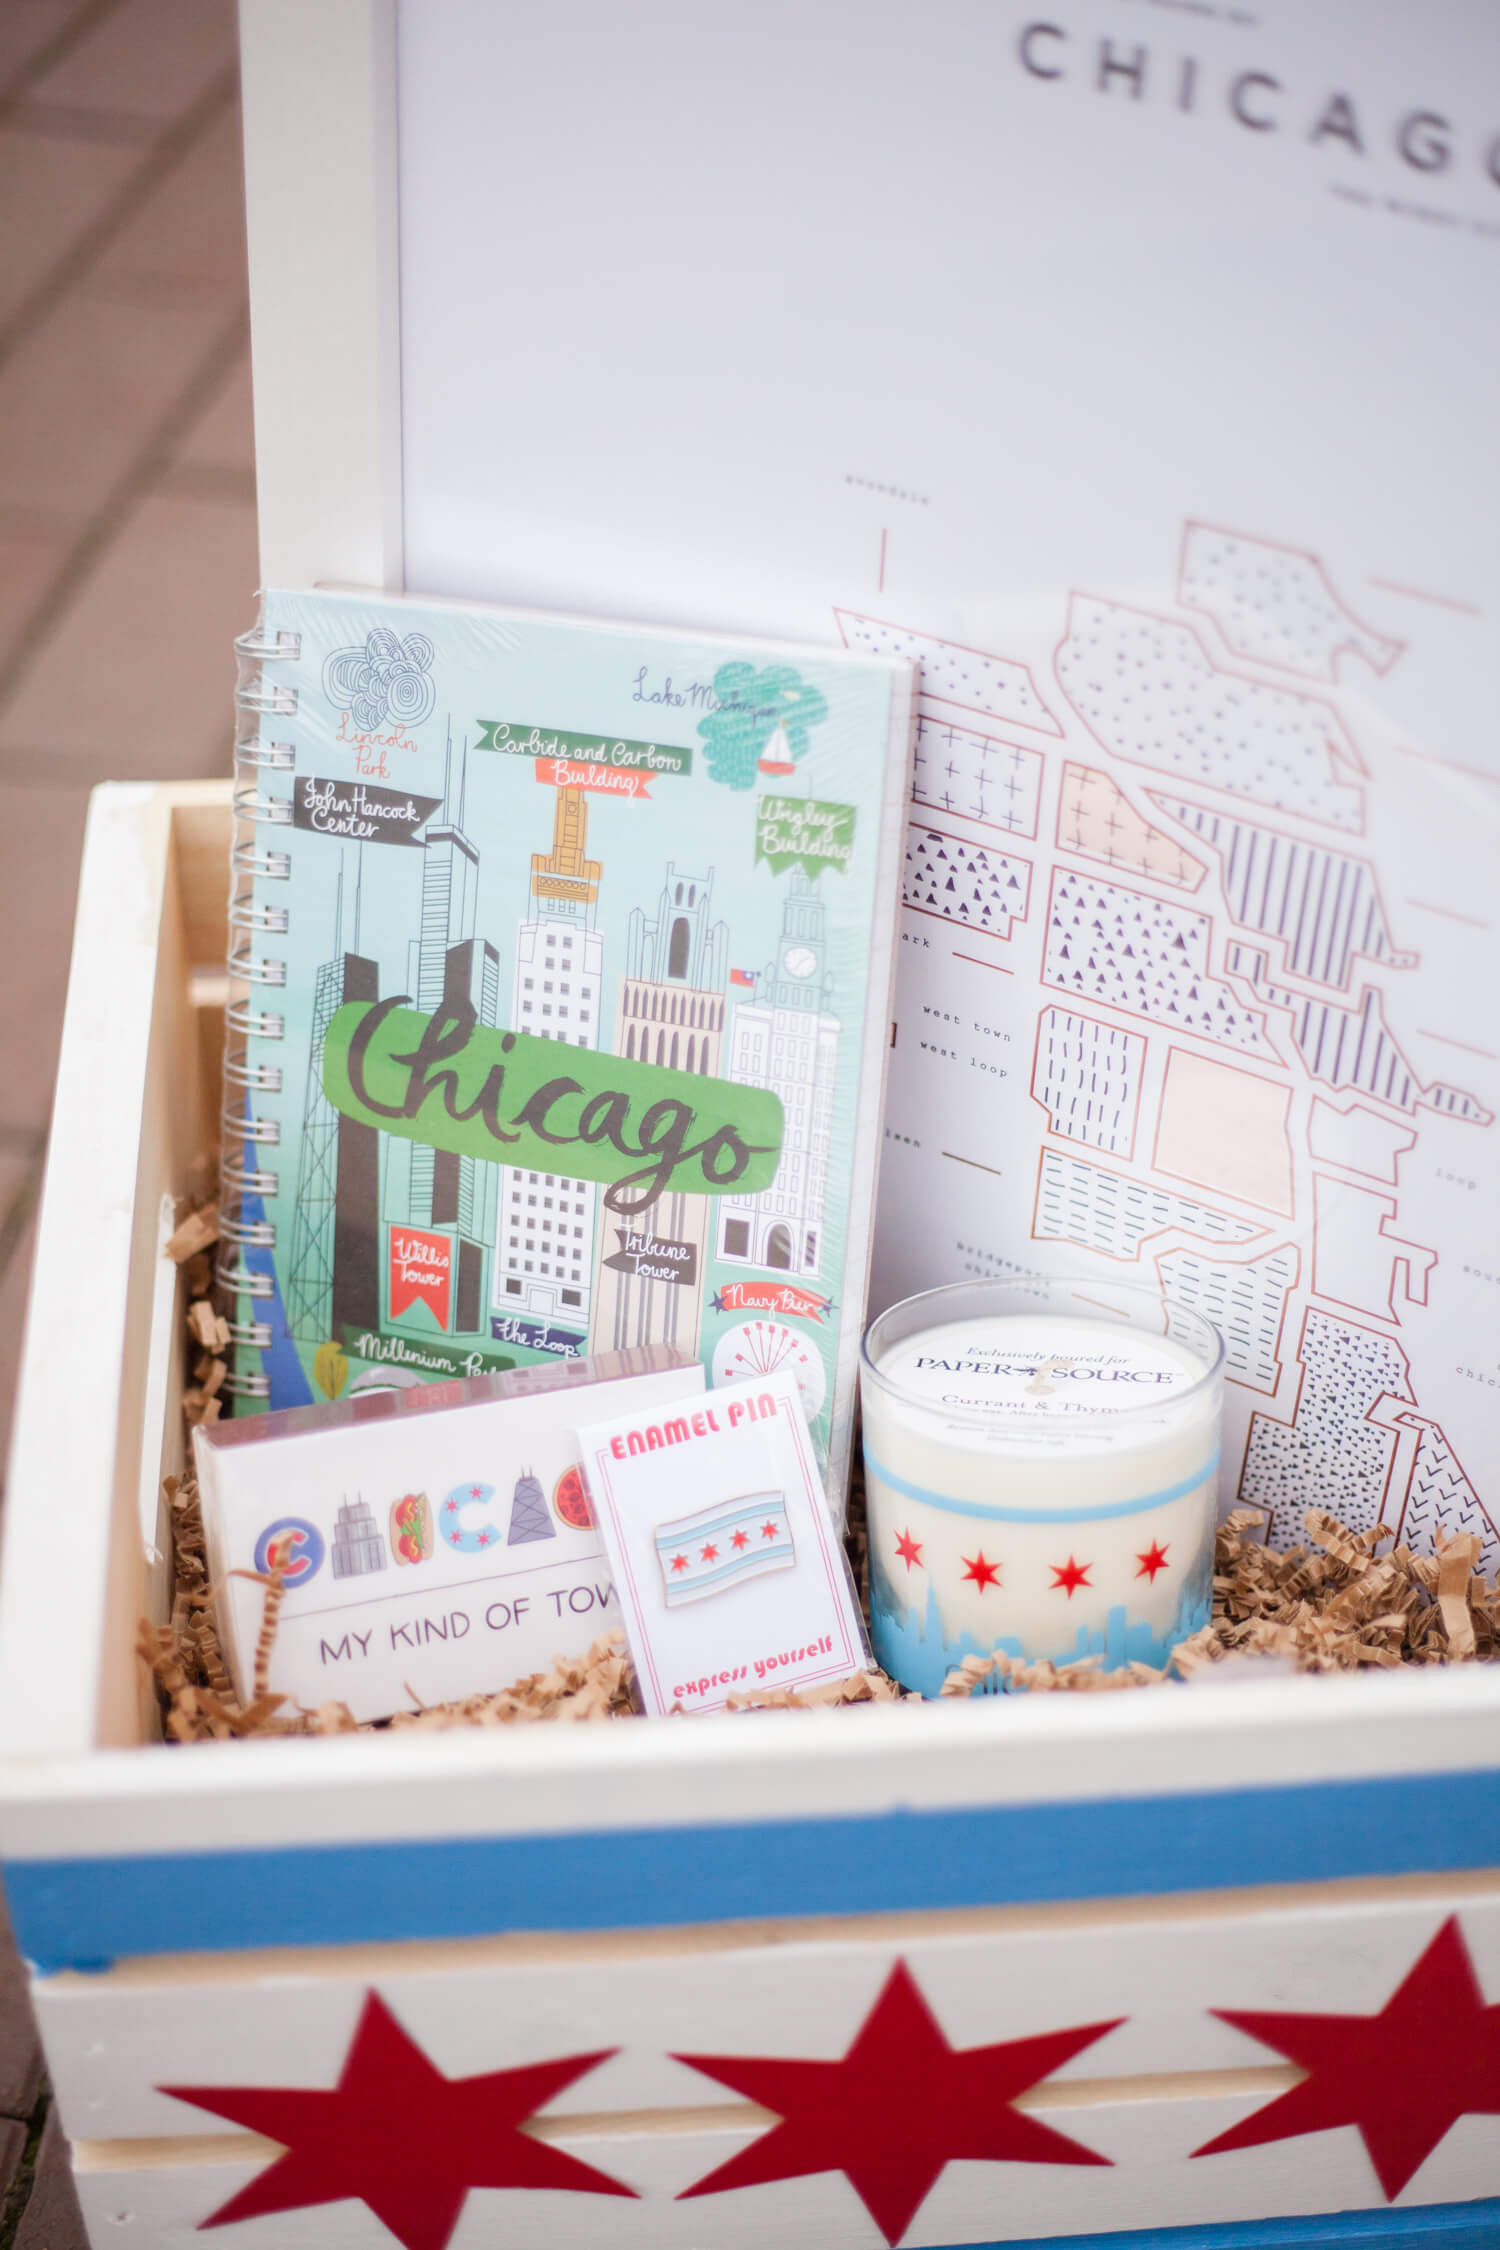 Chicago-themed gift basket. So perfect for someone who just loves the Windy City!